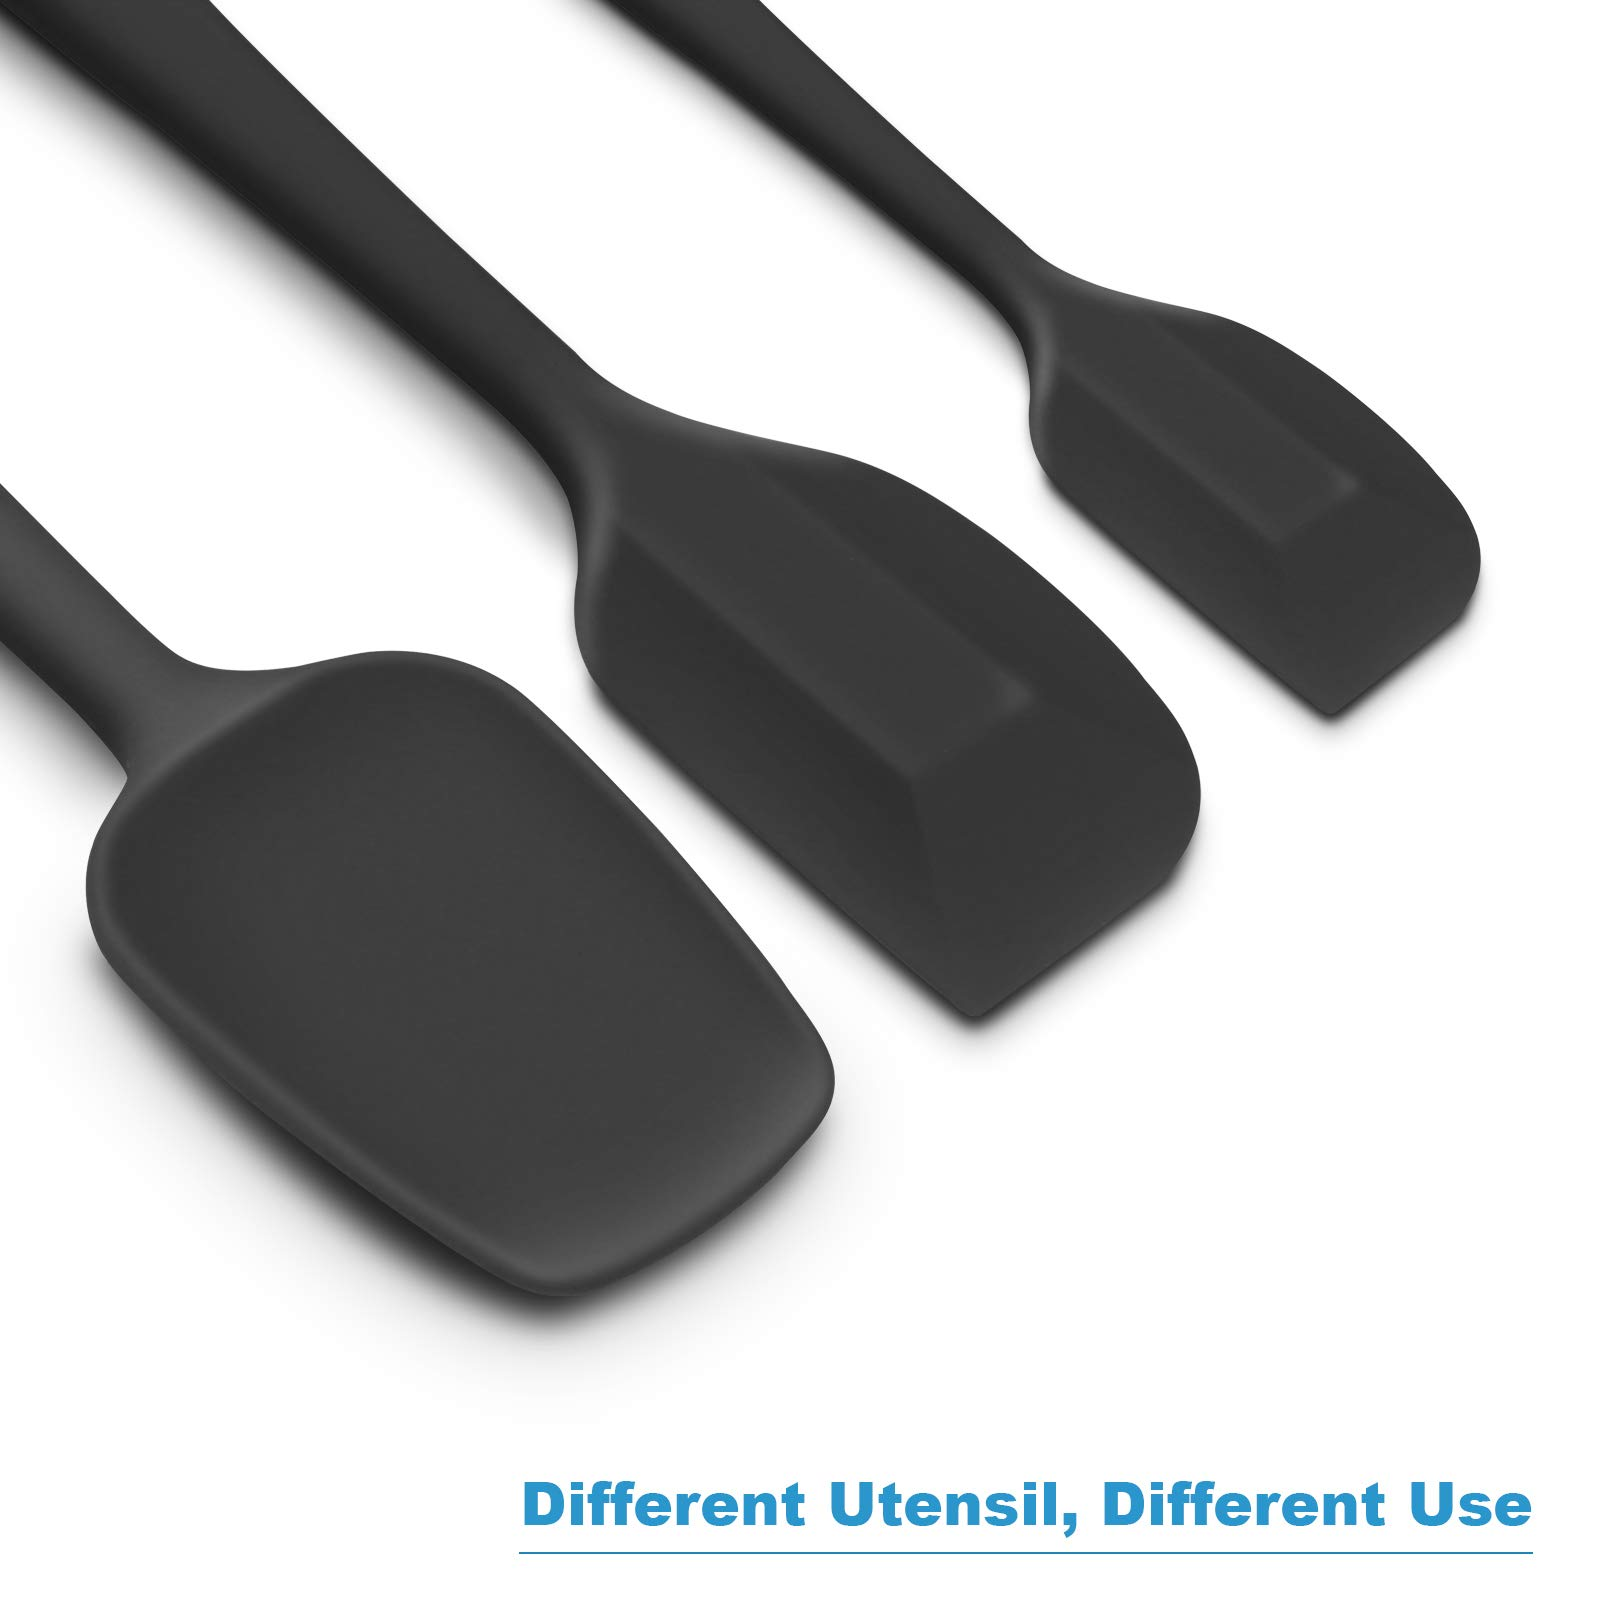 Silicone Spatula 3-piece Set, High Heat-Resistant Good Grips Spatulas, Non-stick Rubber Spatulas with Stainless Steel Core (Black) by ALLWIN-HOUSEWARE W (Image #3)